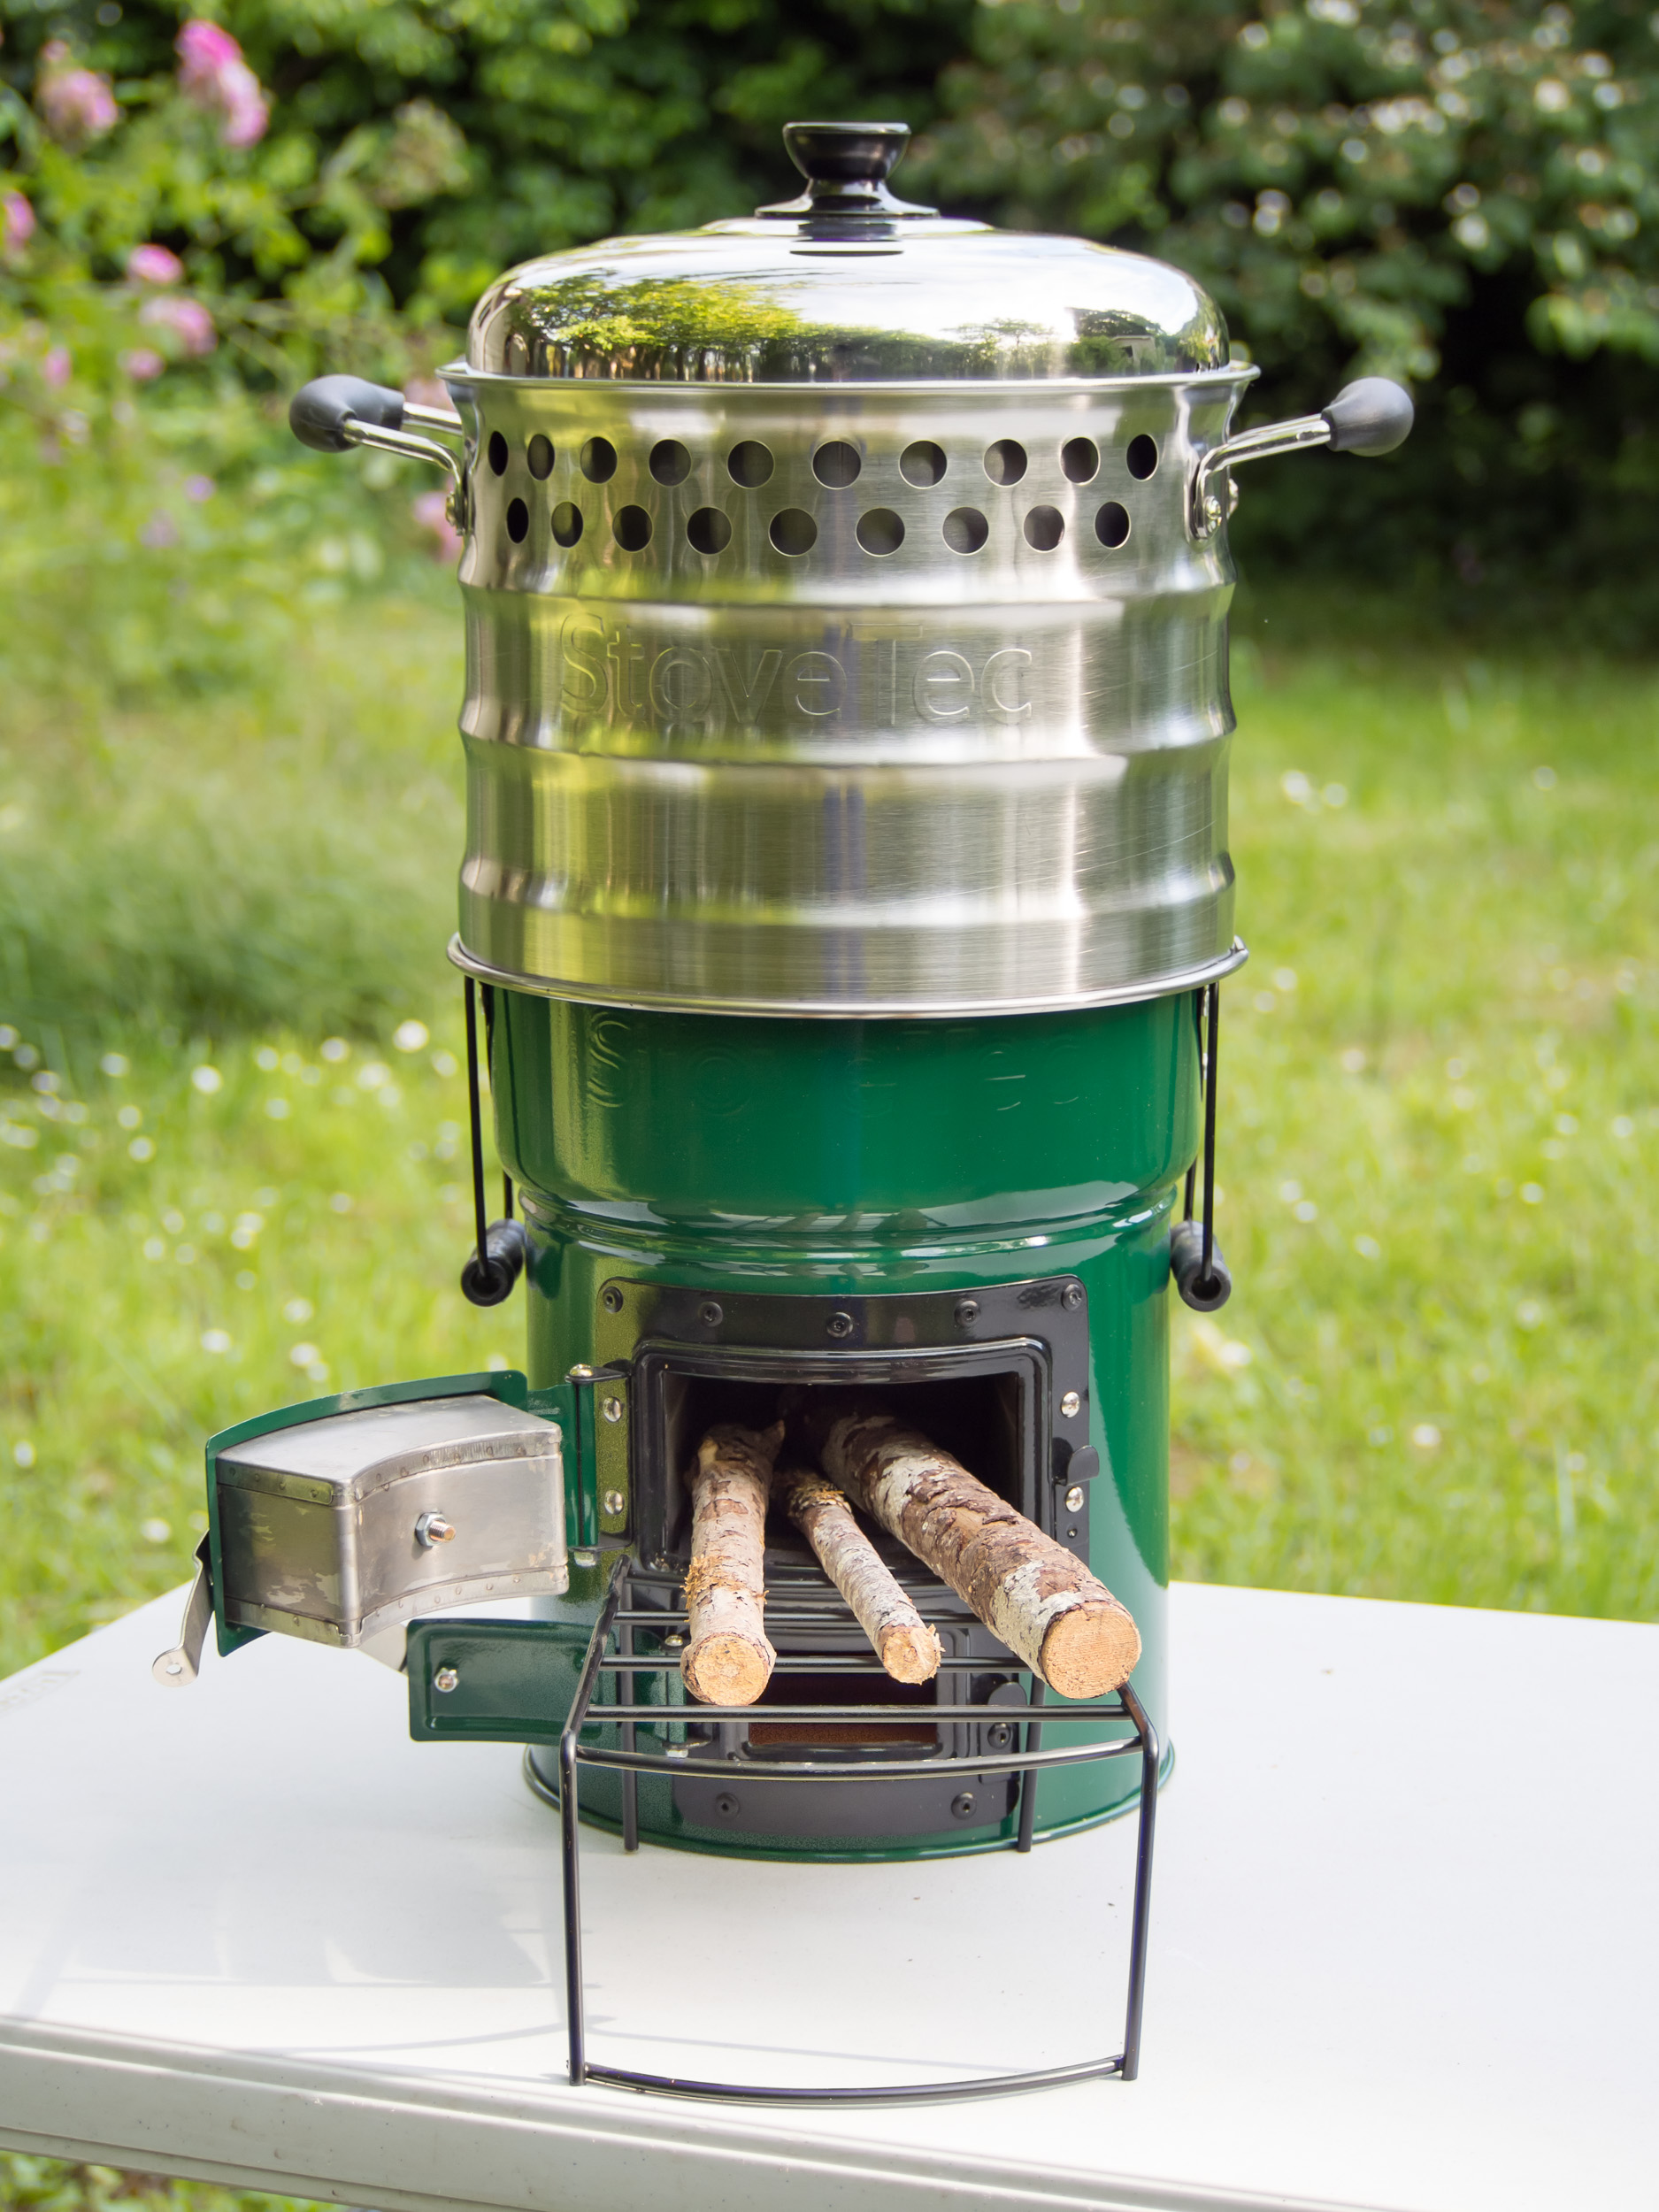 Super pot on top of Big Foot Biomass Stove